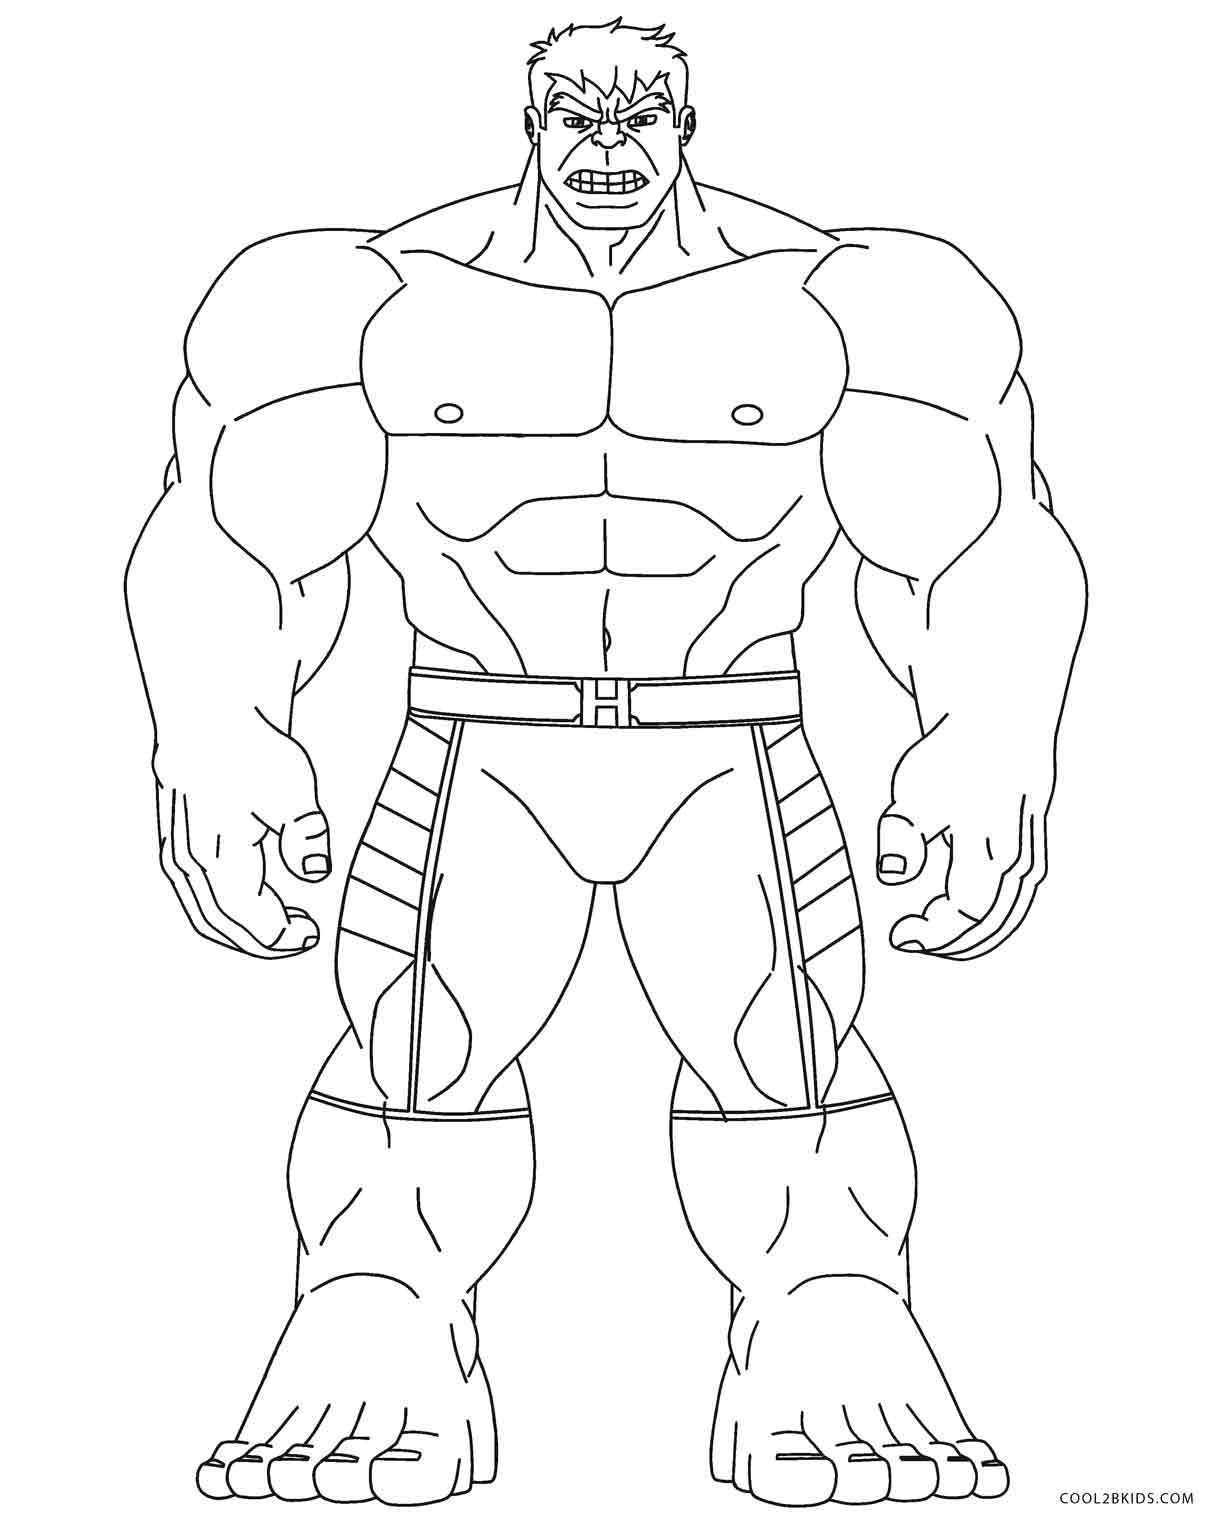 Incredible Hulk Printable Coloring Pages Coloring Hulk Hulkpainting Incredible Pages Pr Avengers Coloring Hulk Coloring Pages Avengers Coloring Pages